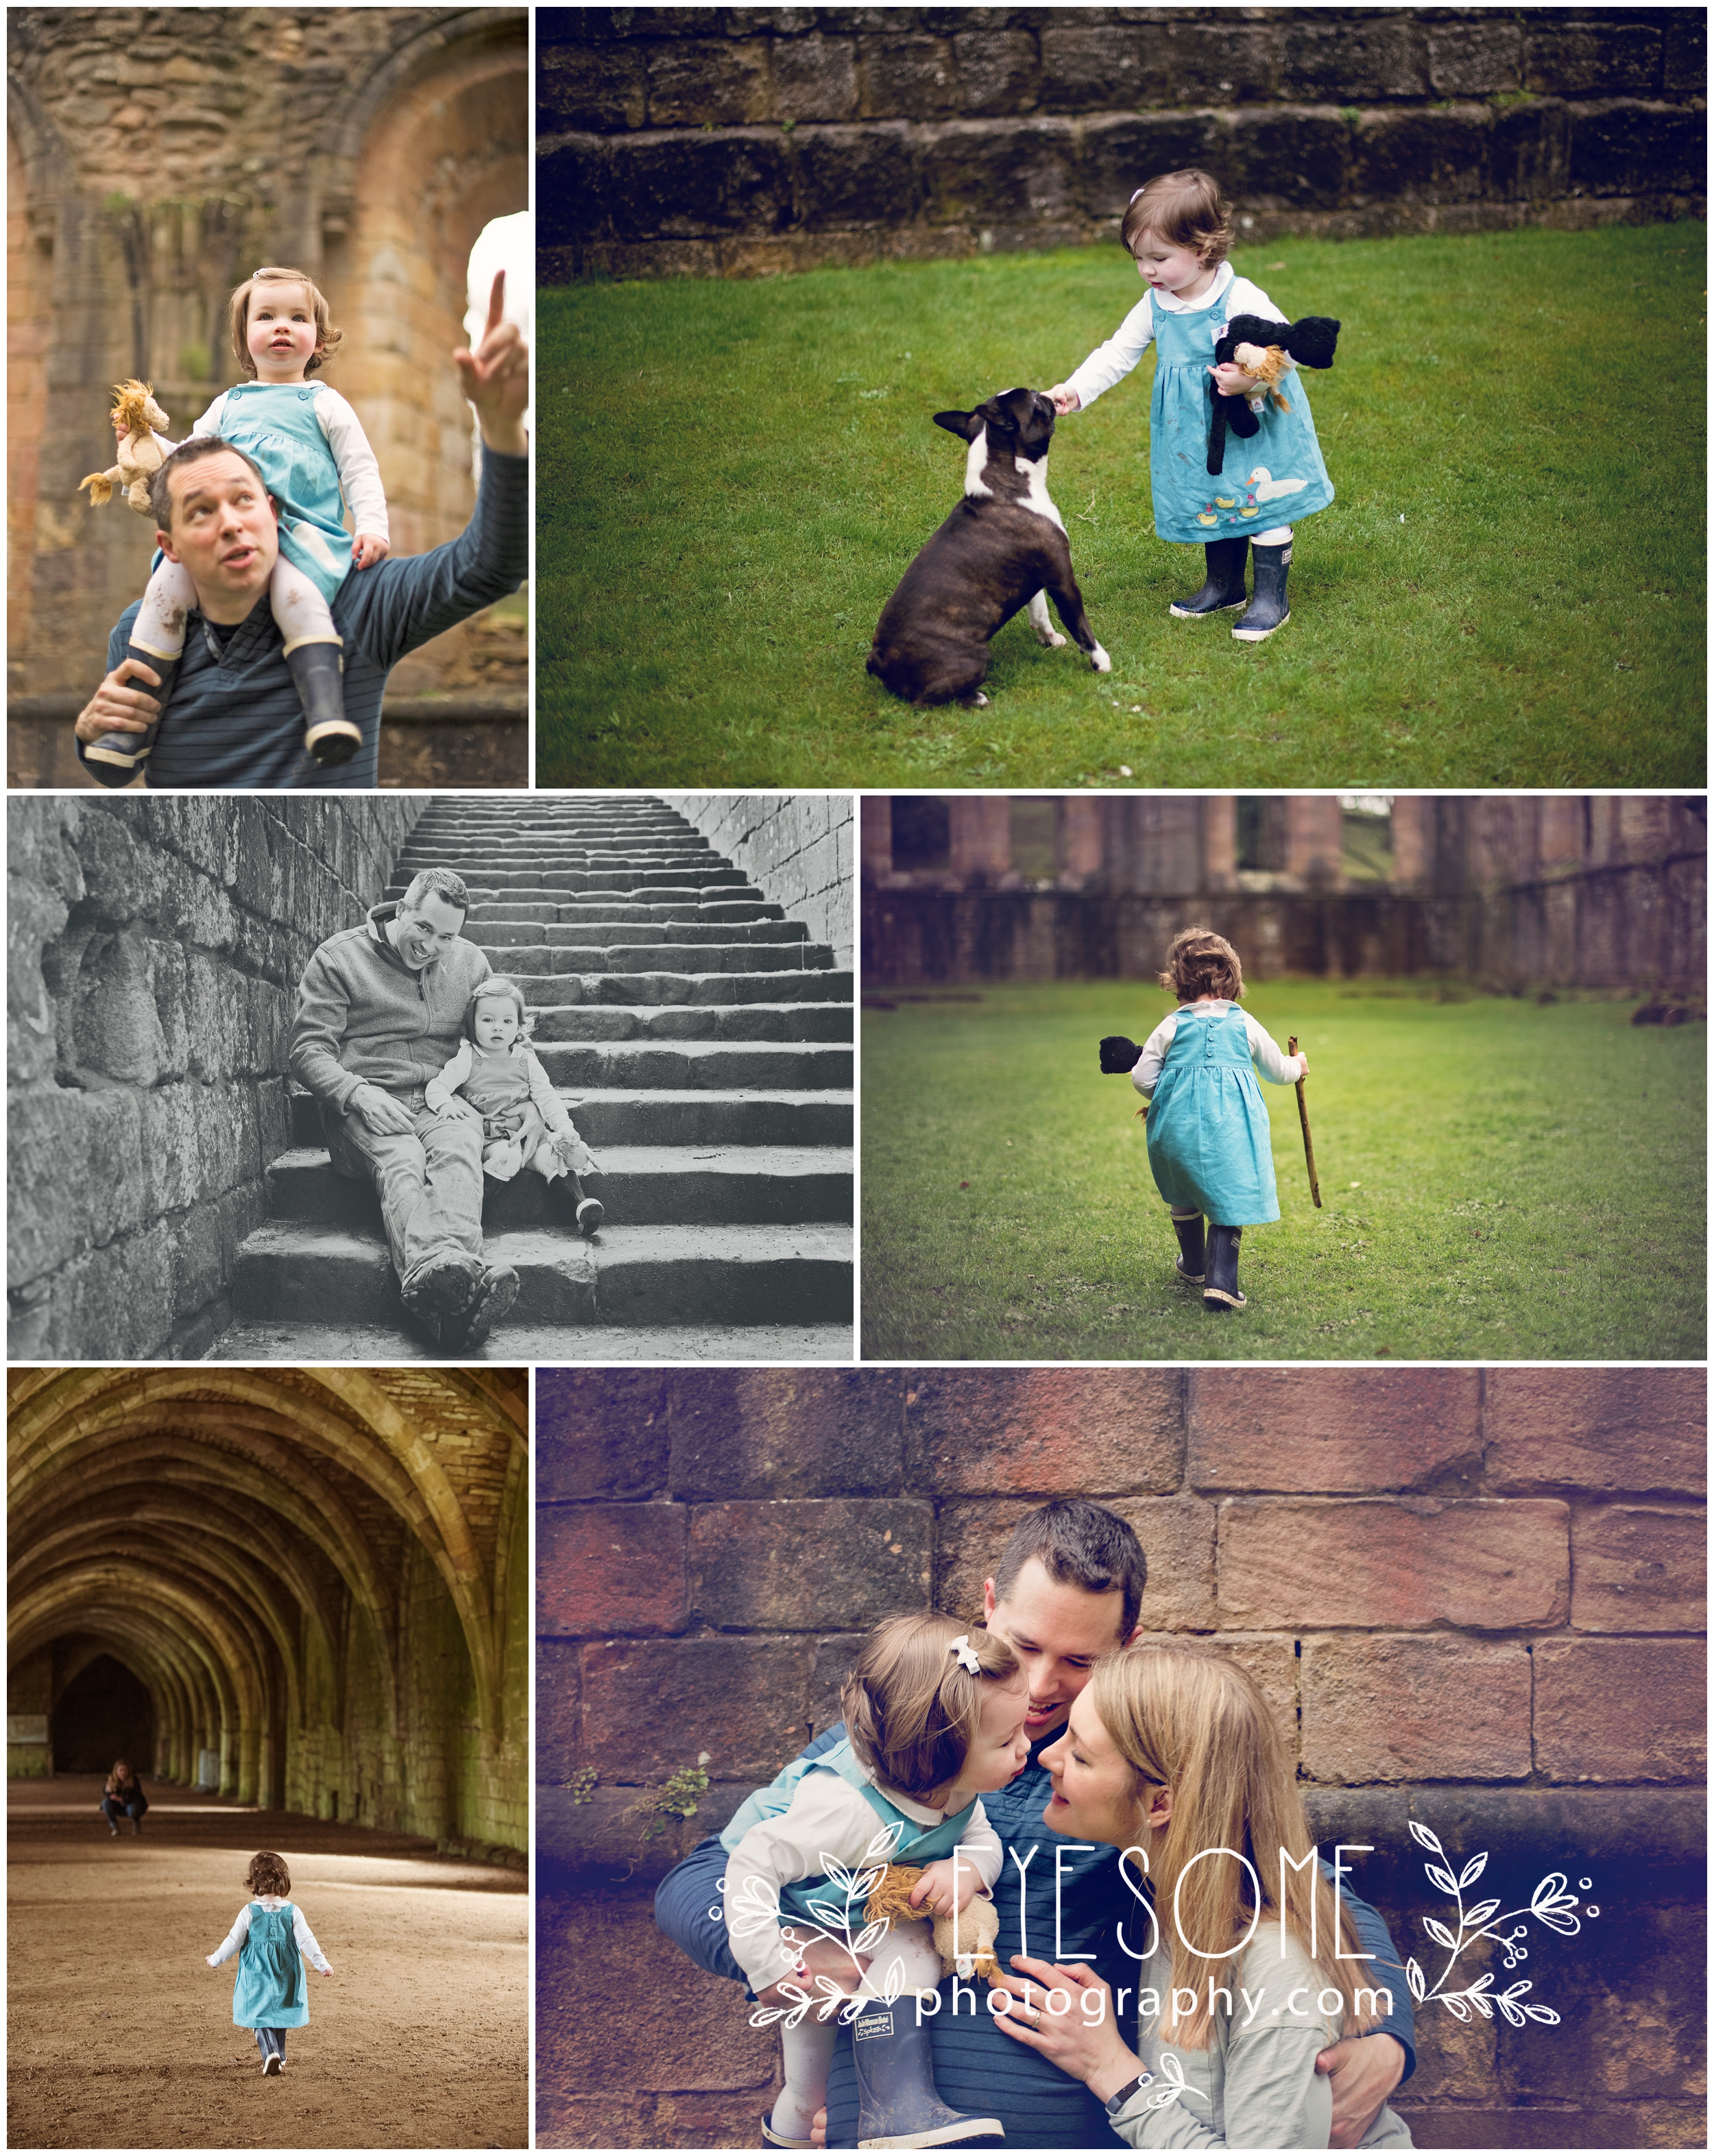 _DSC6633_harrogate family portraits-1.jpg